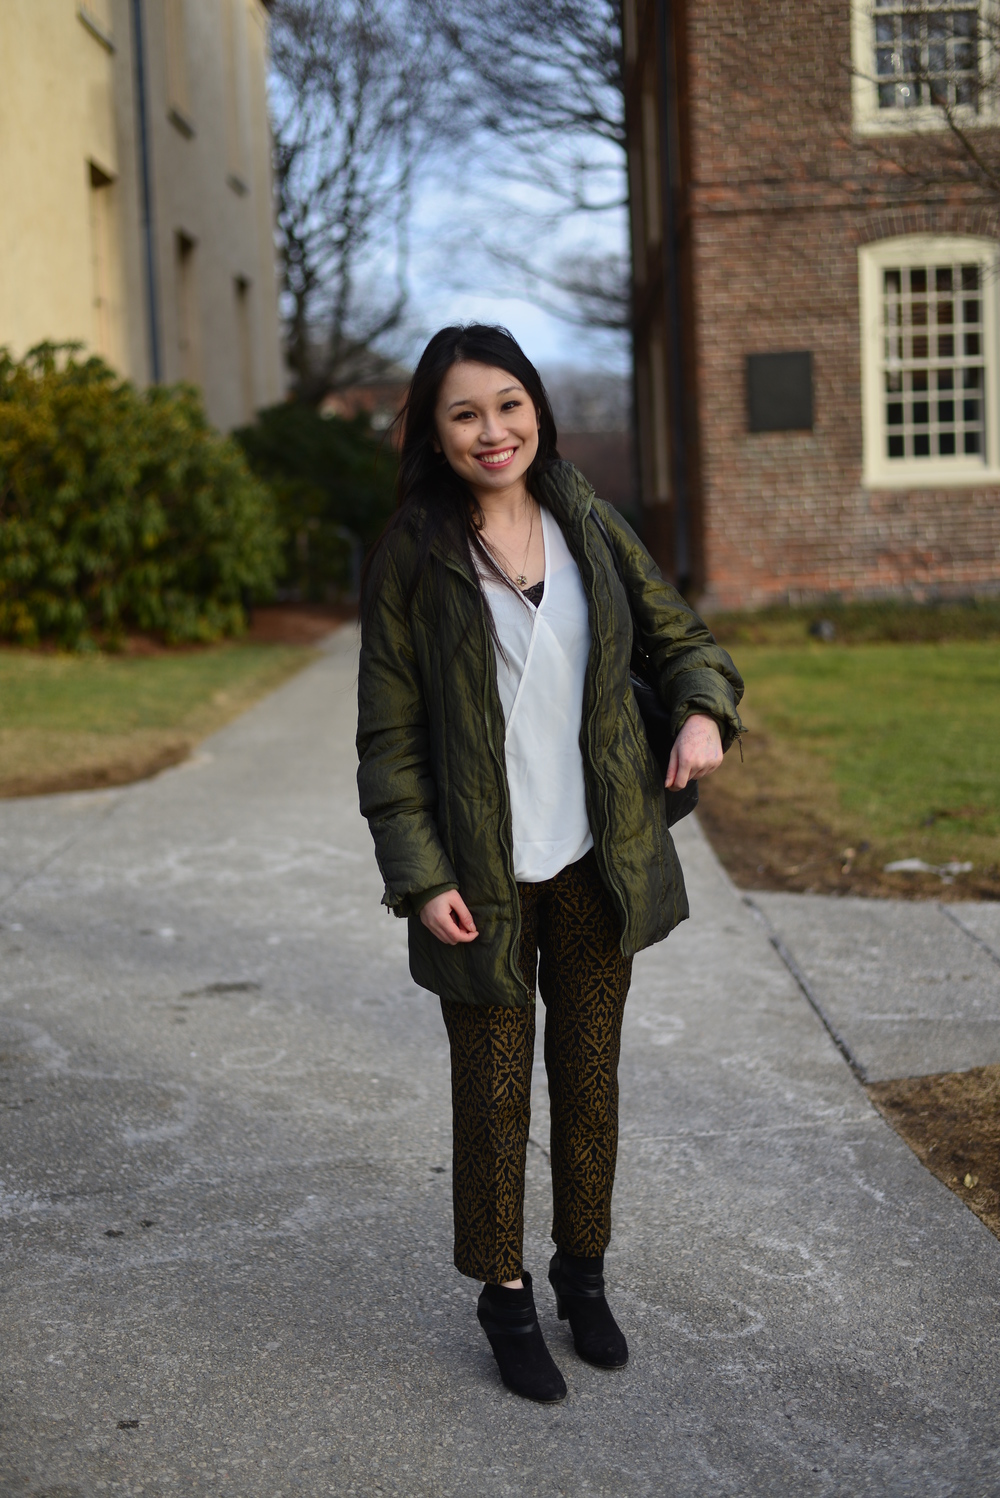 Tina | Brown University Olive Jacket Olive Batik Pattern Trouser Black Suede Booties